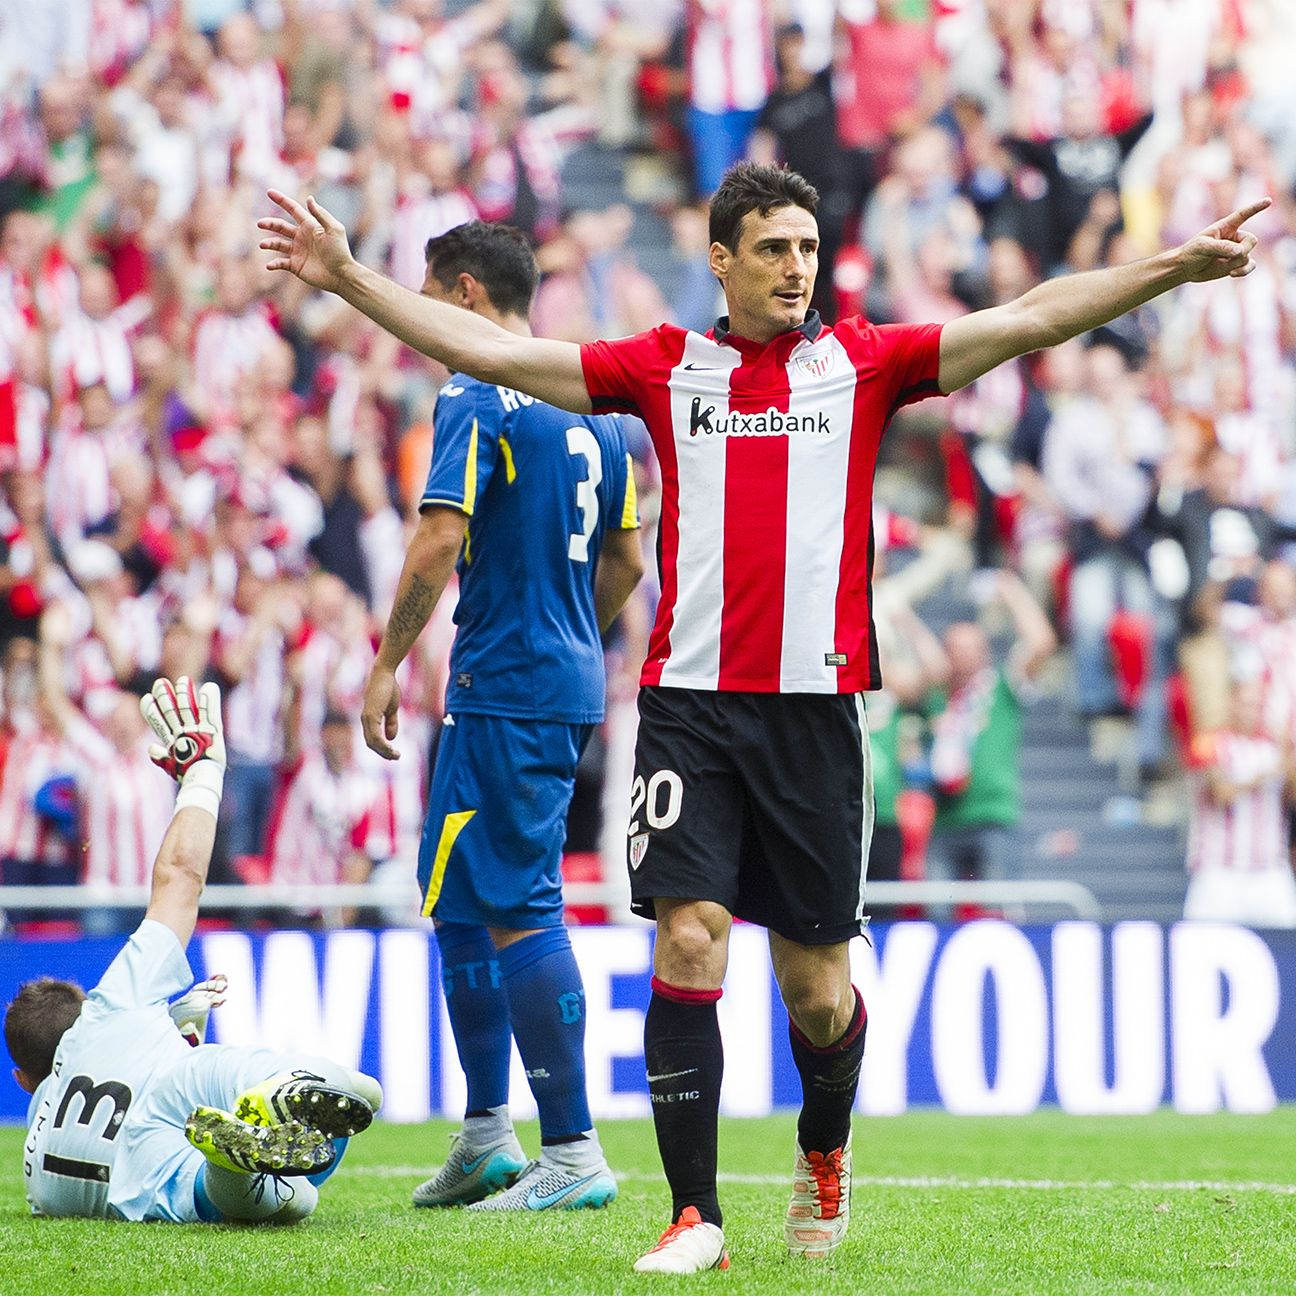 Athletic Bilbao forward Aritz Aduriz has scored 17 goals in La Liga so far this season.